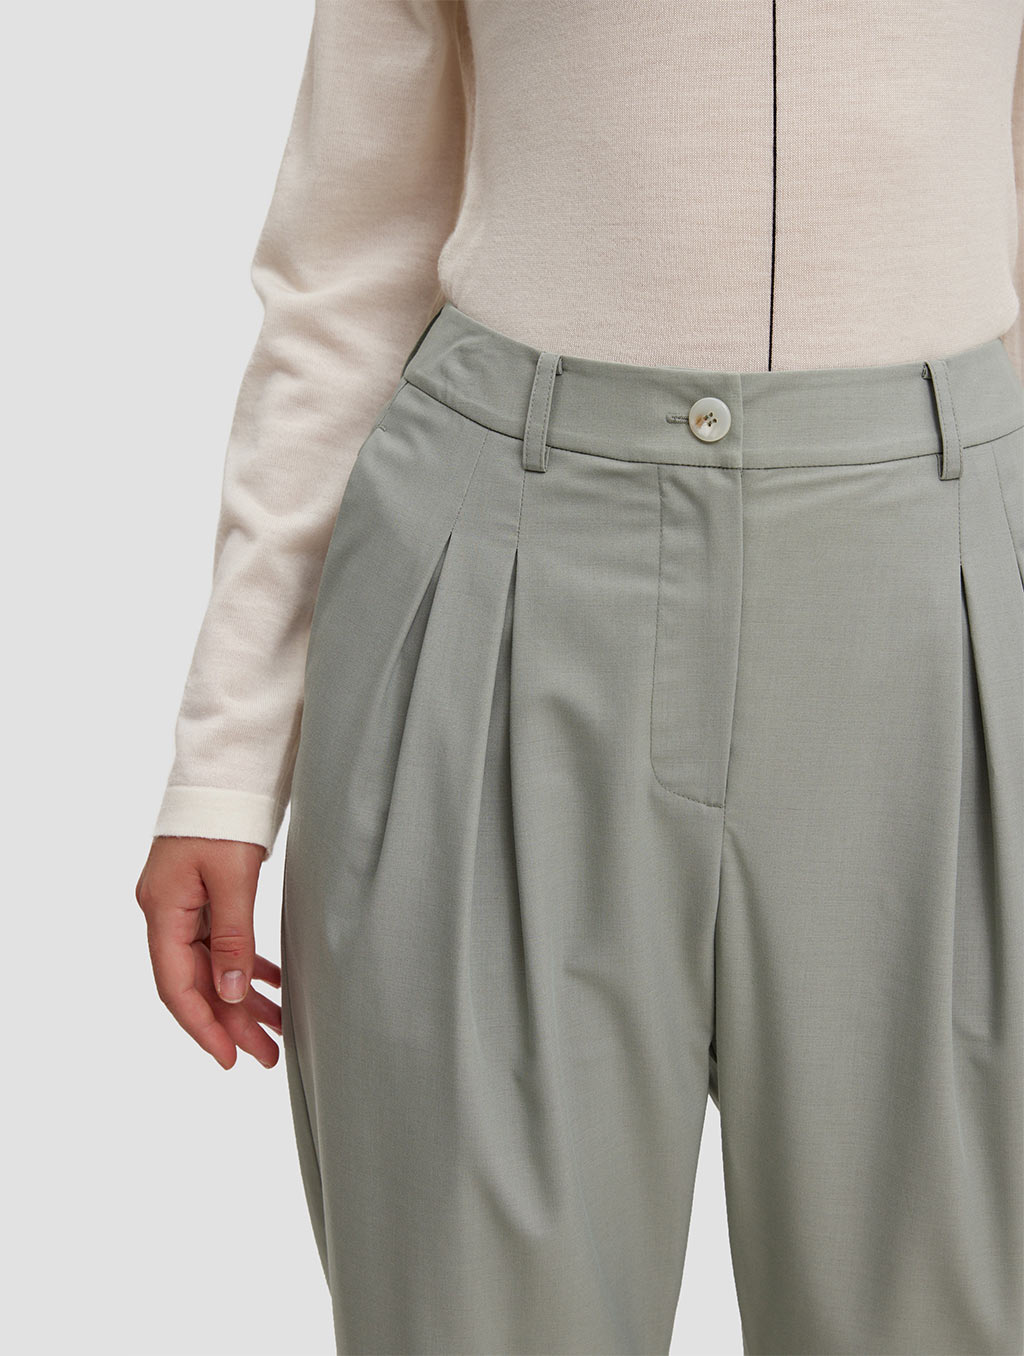 Ankle length Tapered pants-detail1-pale green